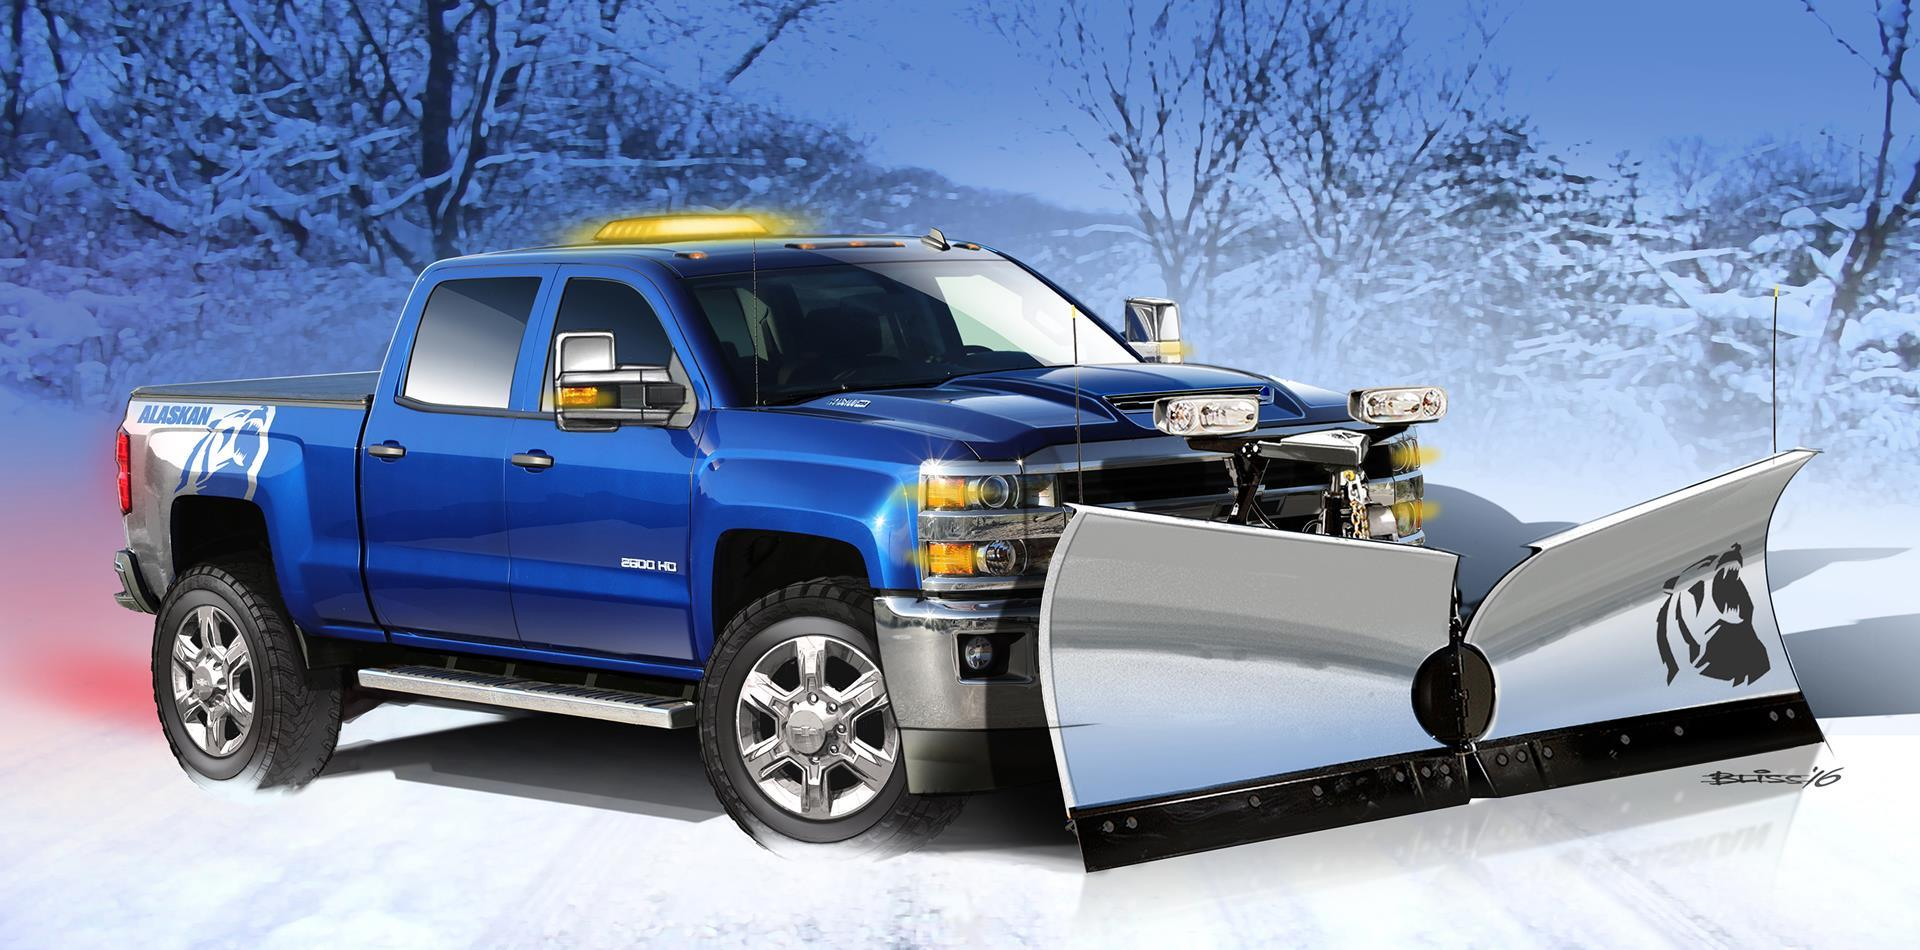 2016 Chevrolet Silverado 2500HD Alaskan Edition Concept News and Information, Research, and ...